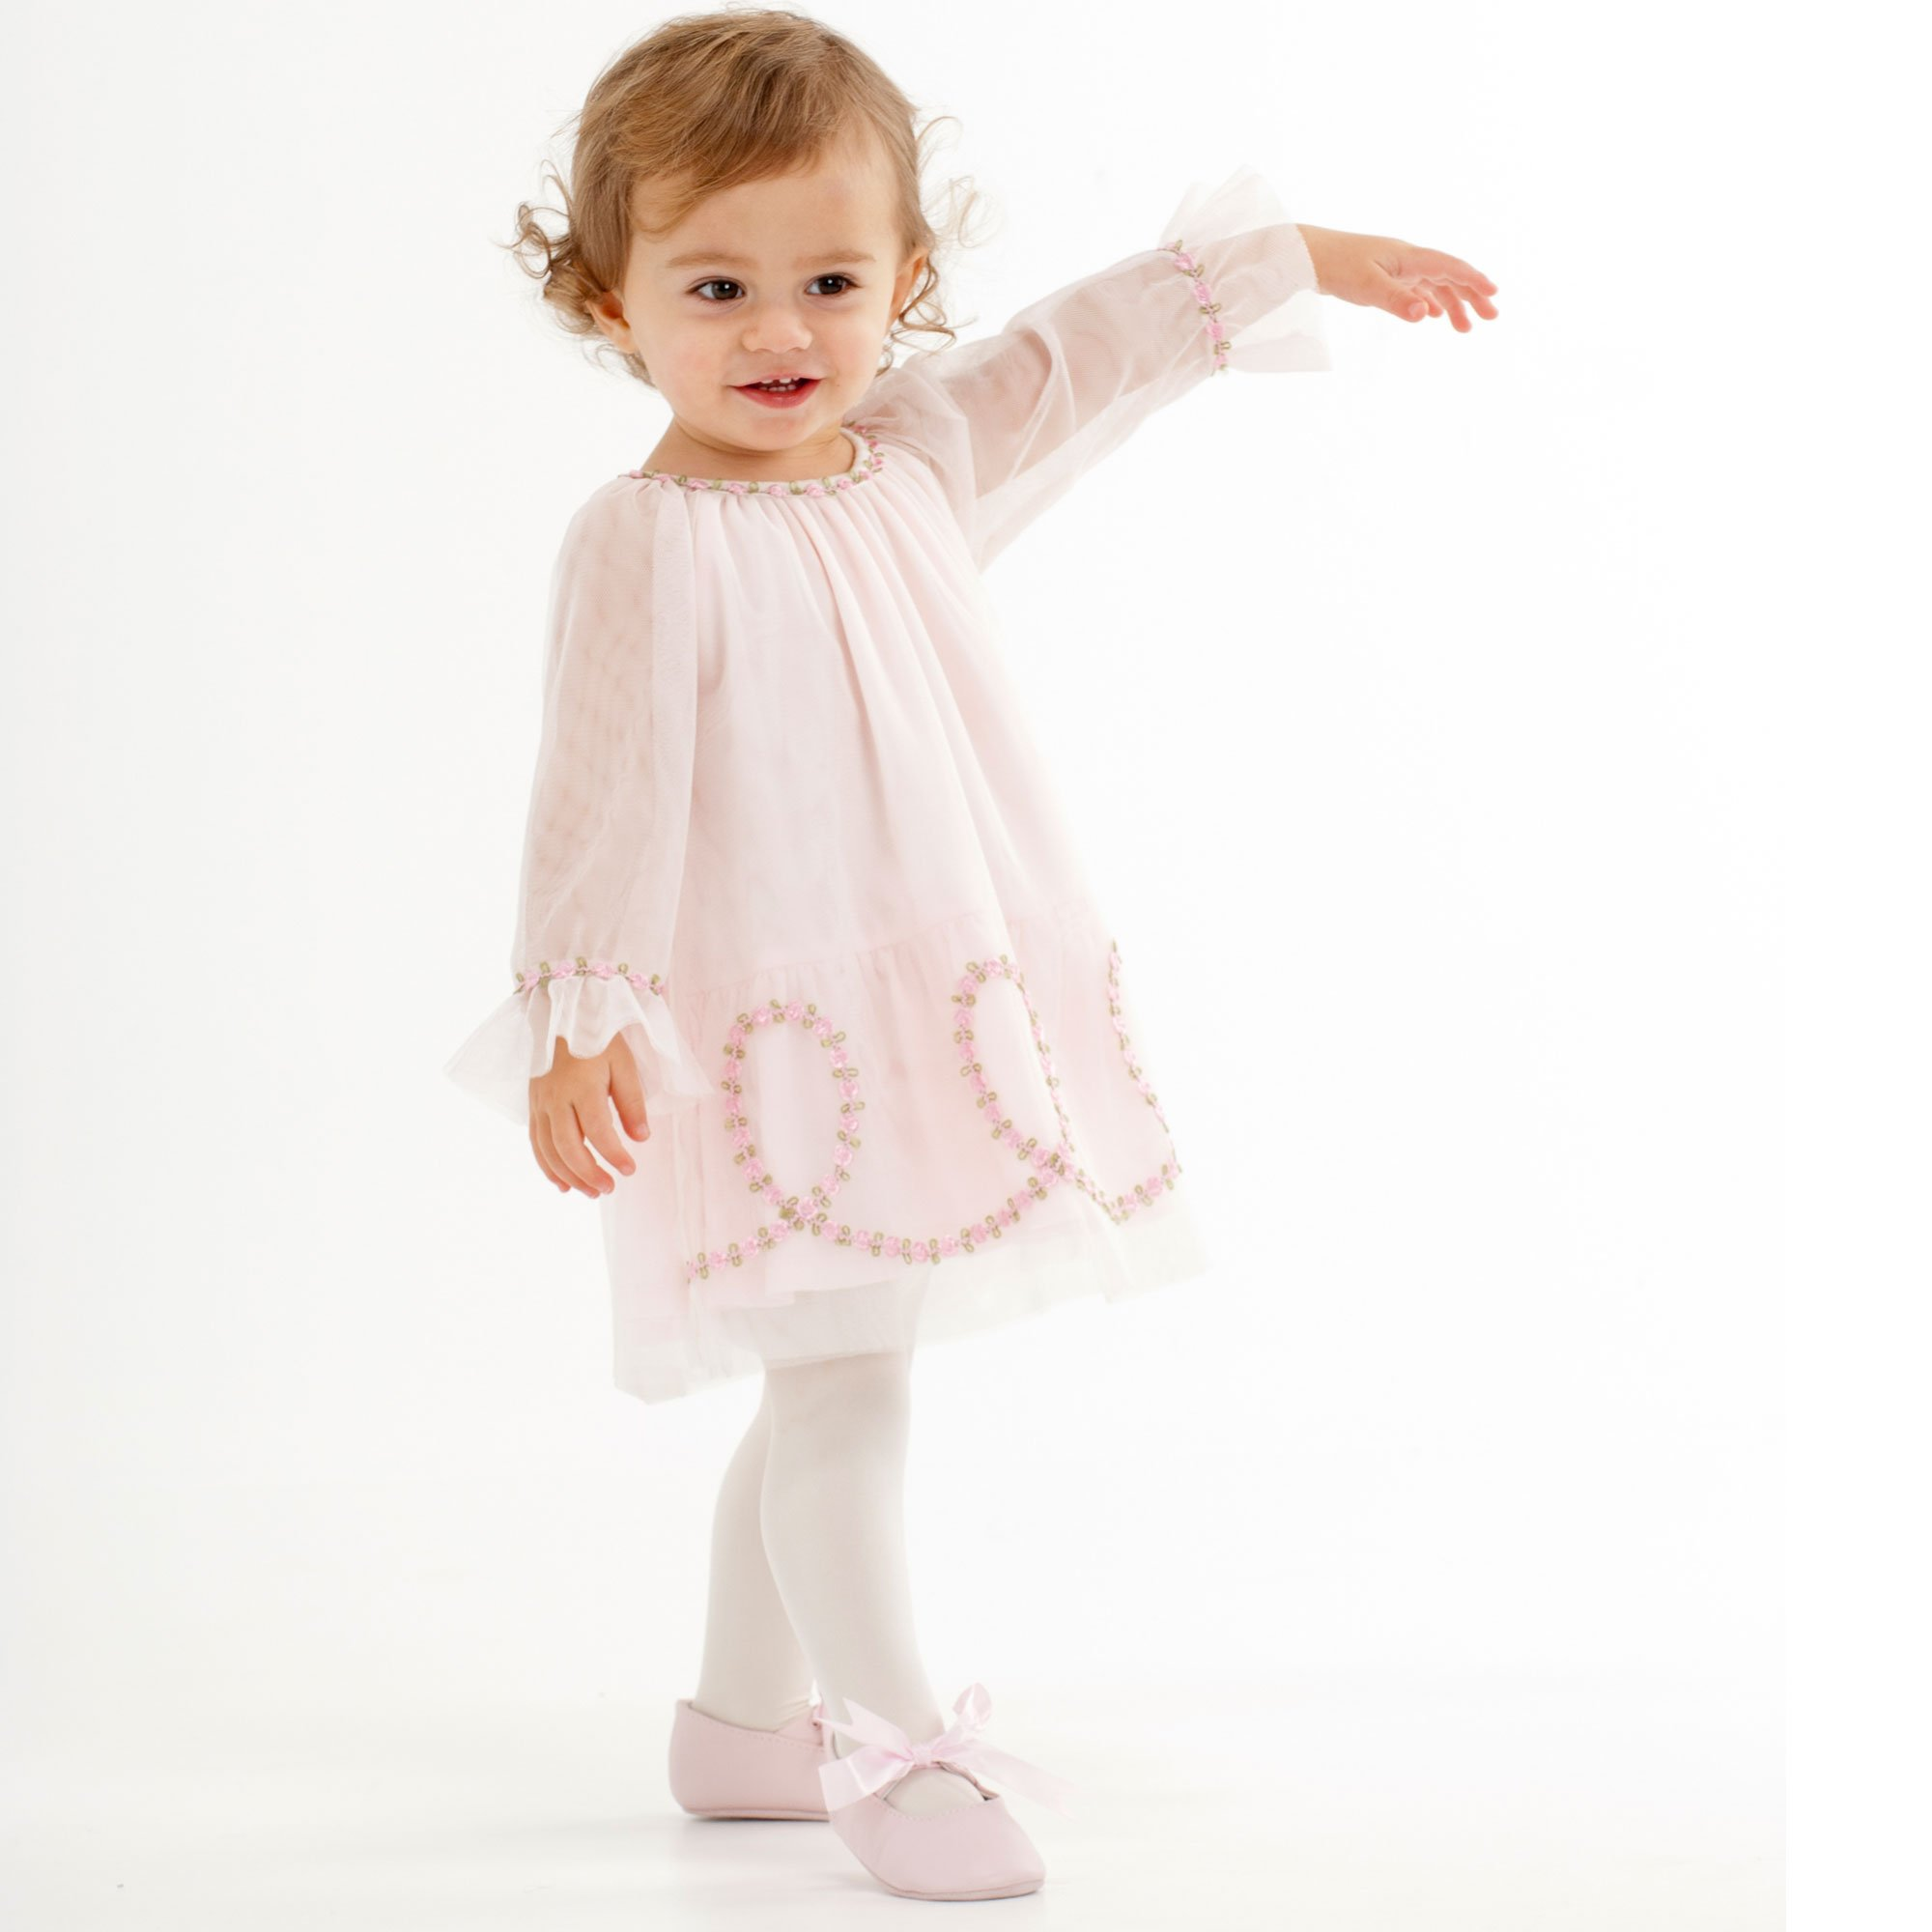 Flower Girl Dresses And Outfits From Baby Bling Street